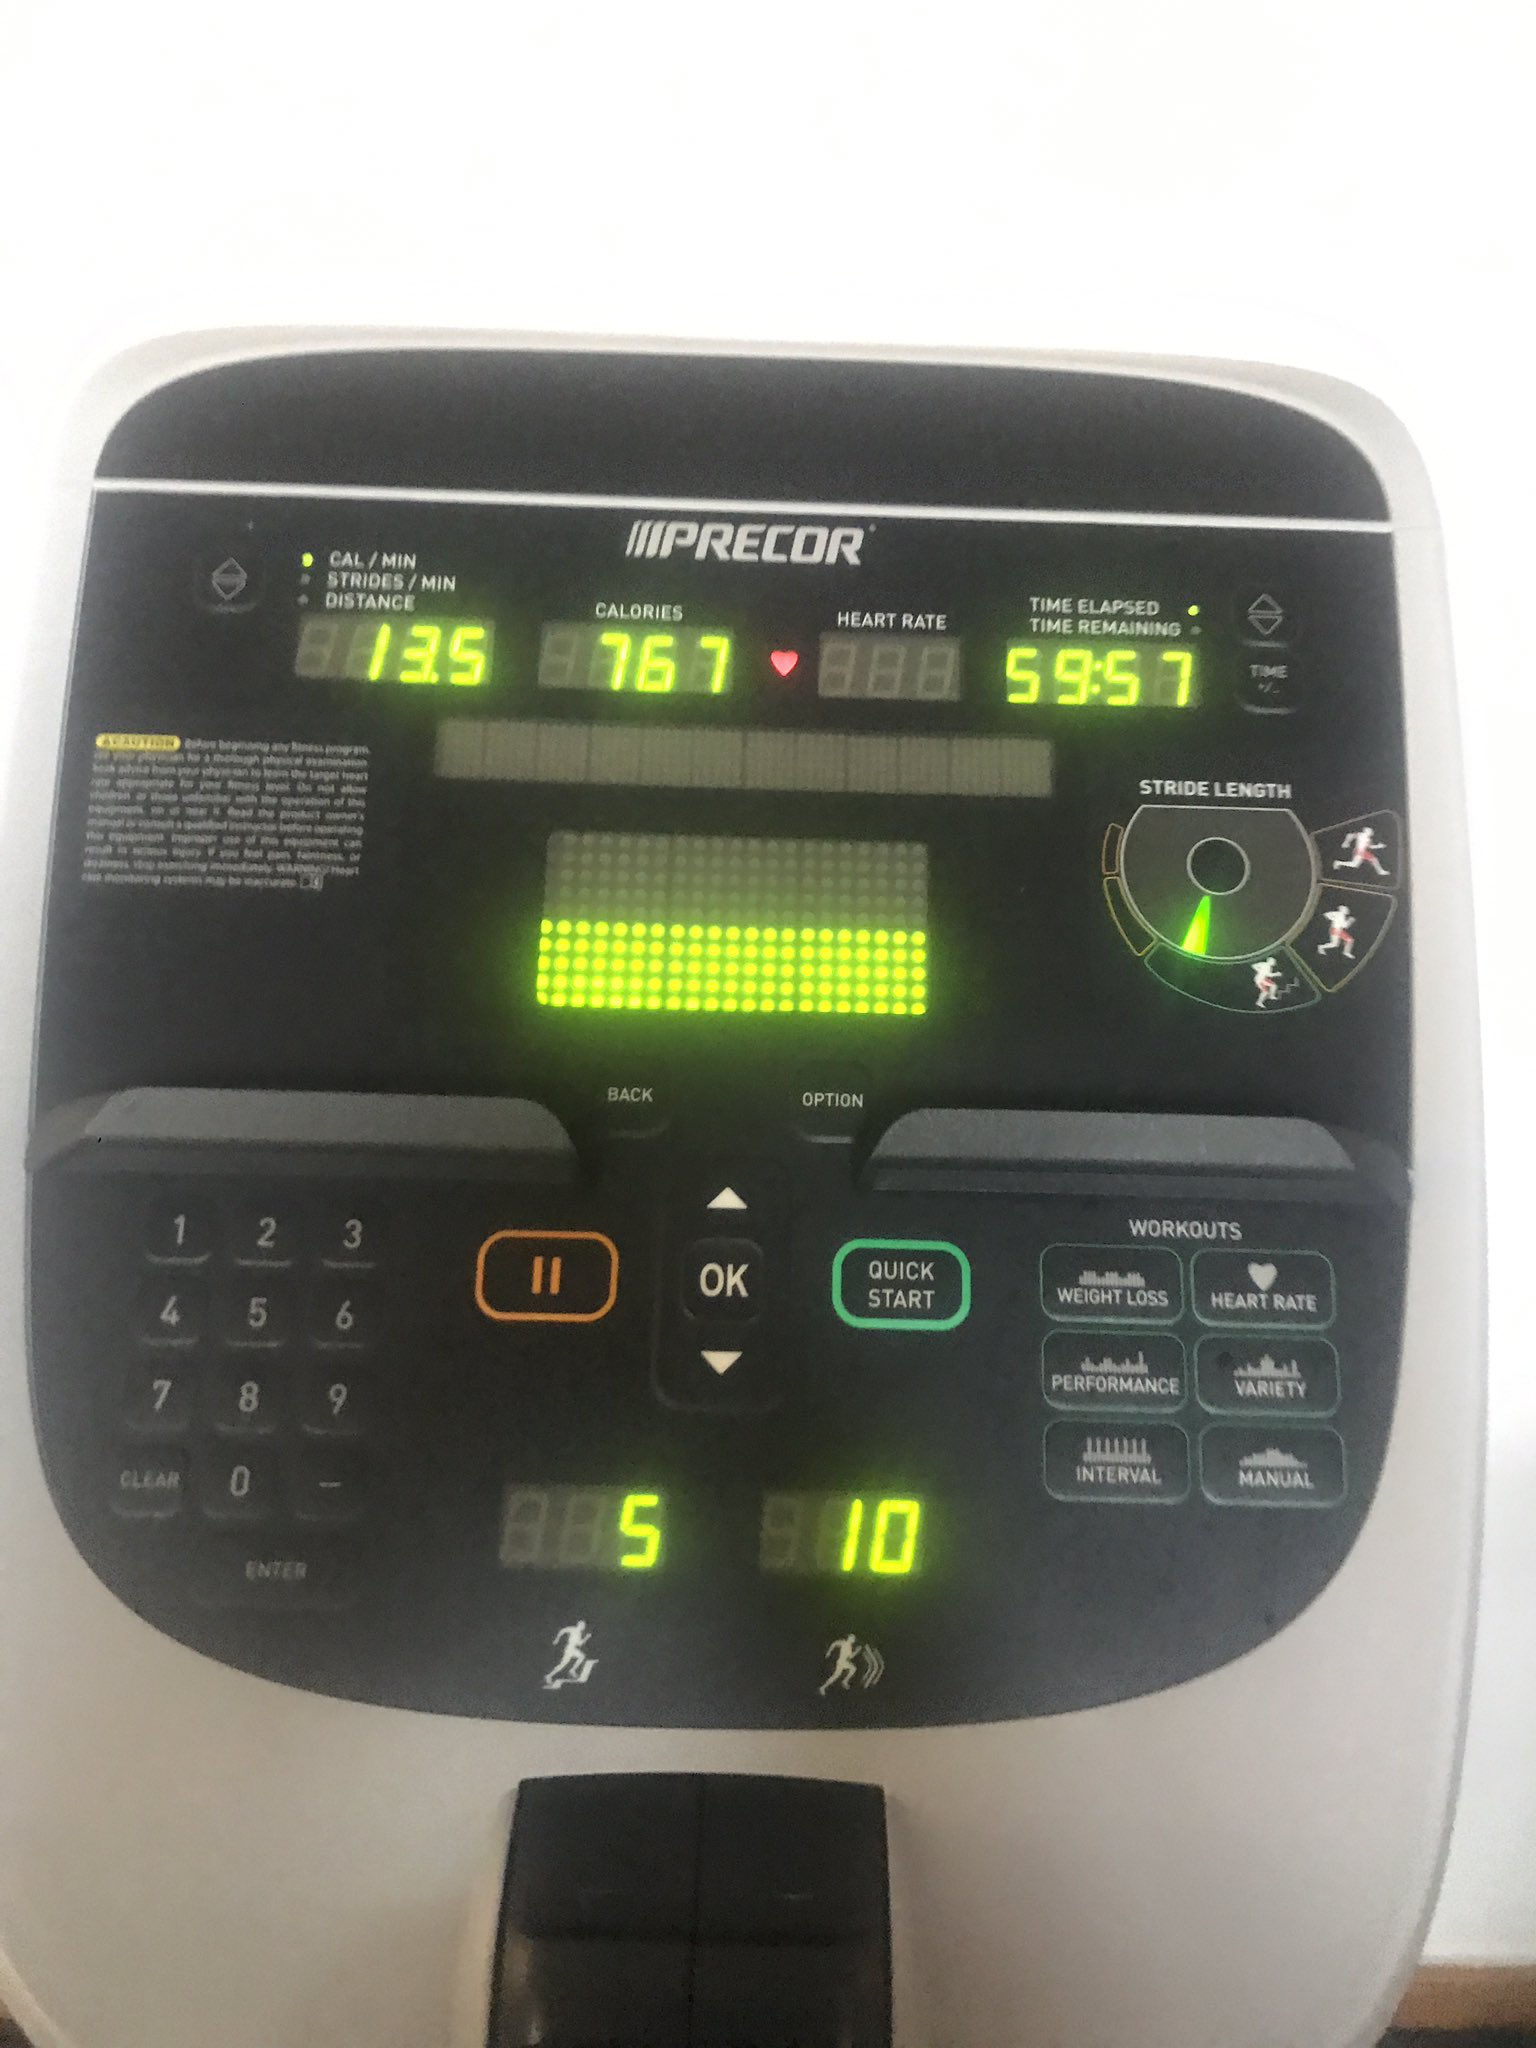 That'll do .. #steadycardio #fitness #fitnessmotivation love this machine at @DavidLloydUK  #bushey https://t.co/MFNk2JjgV2